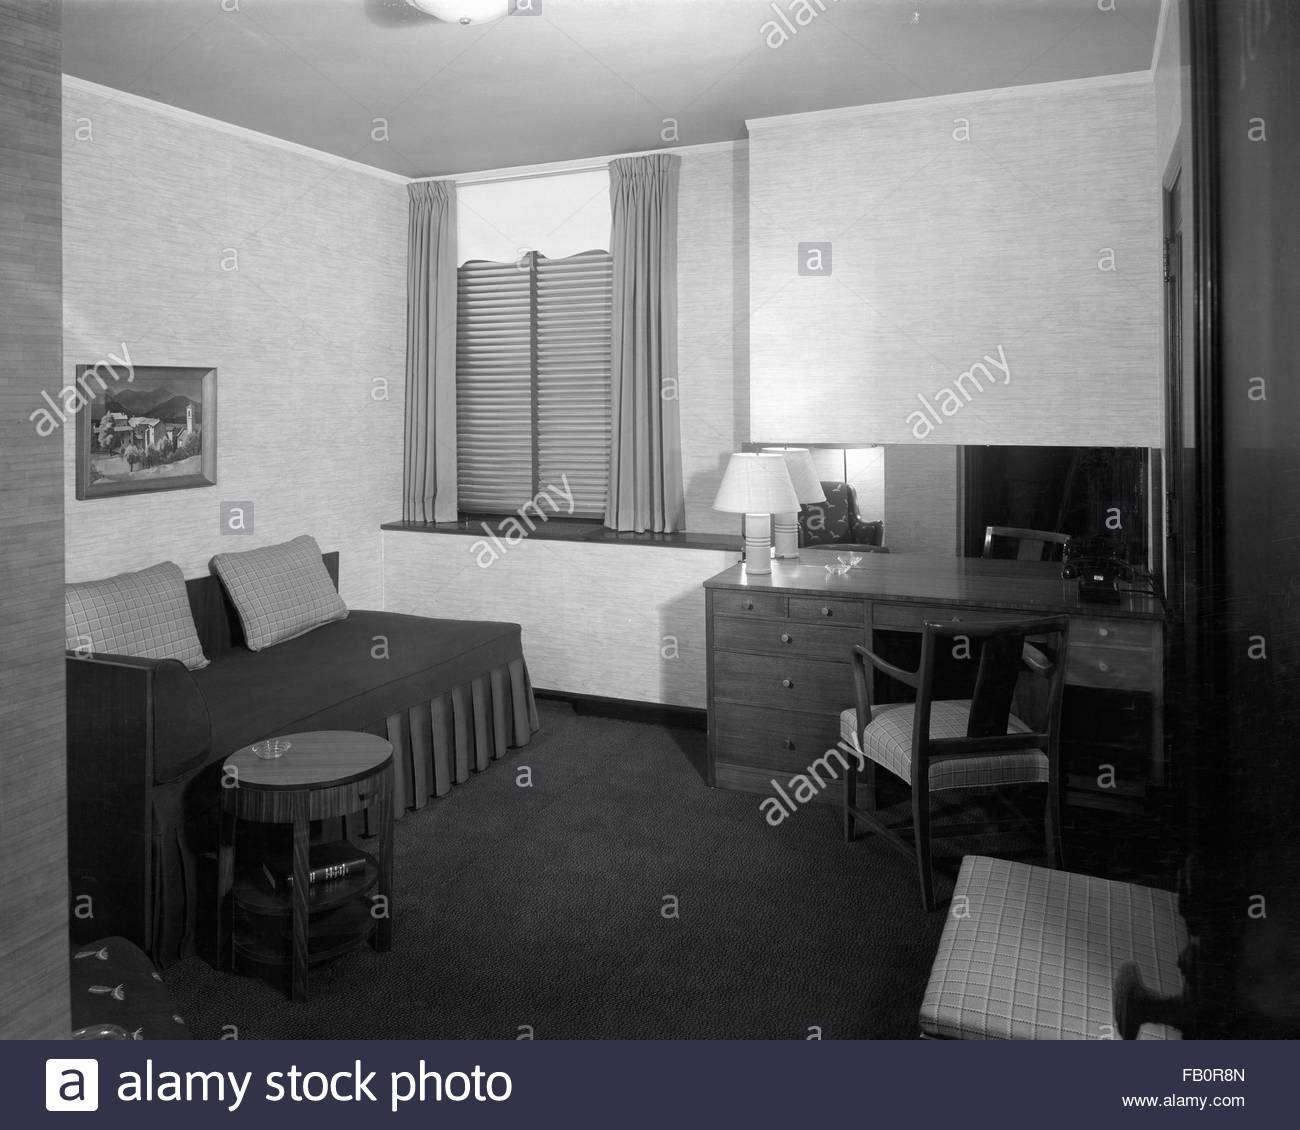 Hotel room at the Stevens Hotel in Chicago (Ill.), 1939 Mar. 2. Interior view of a hotel room with a daybed and - Stock Image